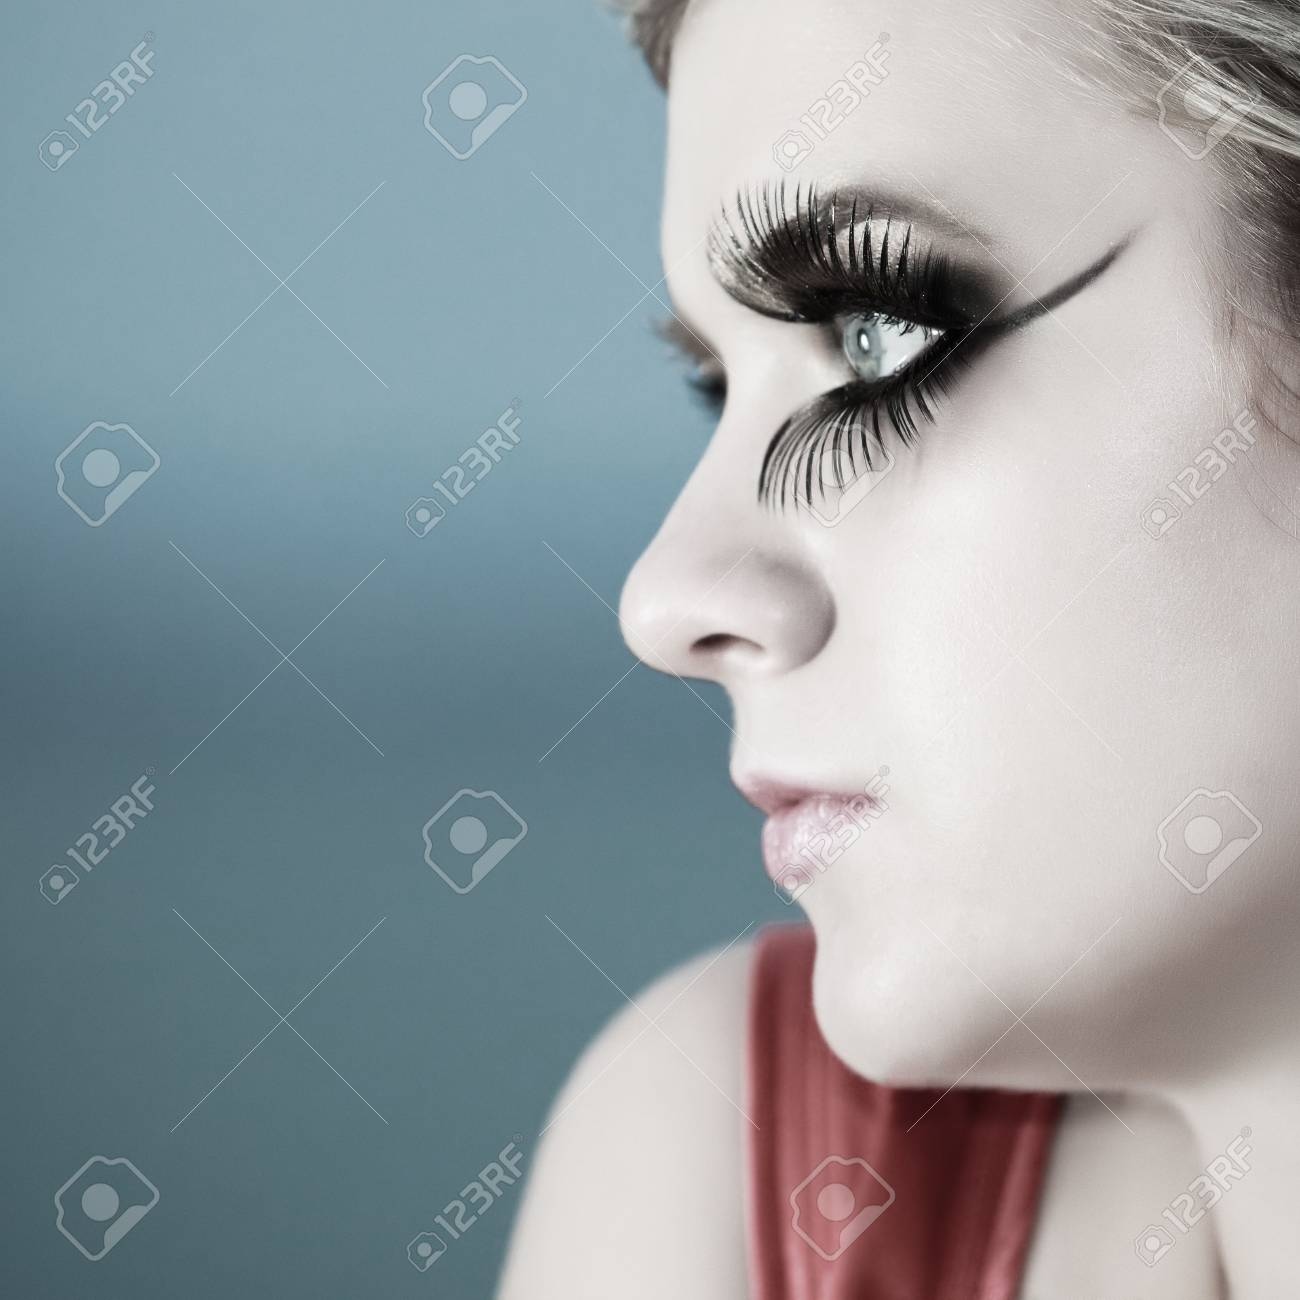 Artistic style portrait of young beautful woman Stock Photo - 6632184